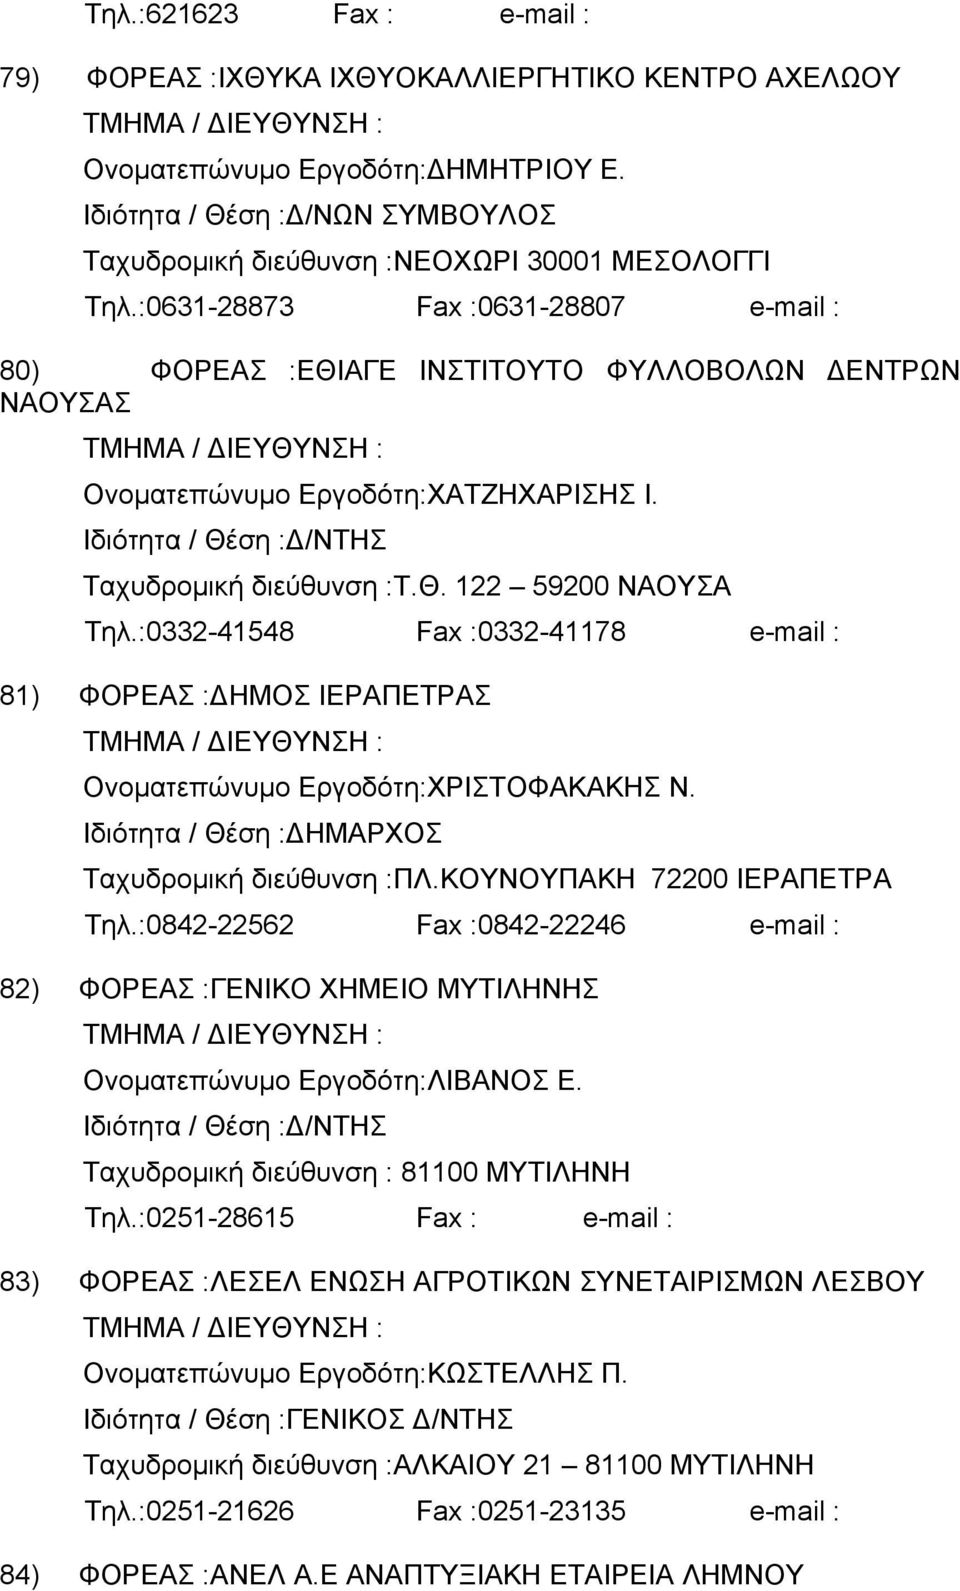 :0332-41548 Fax :0332-41178 e-mail : 81) ΦΟΡΕΑΣ : ΗΜΟΣ ΙΕΡΑΠΕΤΡΑΣ Ονοµατεπώνυµο Εργοδότη:ΧΡΙΣΤΟΦΑΚΑΚΗΣ Ν. ΗΜΑΡΧΟΣ Ταχυδροµική διεύθυνση :ΠΛ.ΚΟΥΝΟΥΠΑΚΗ 72200 ΙΕΡΑΠΕΤΡΑ Τηλ.